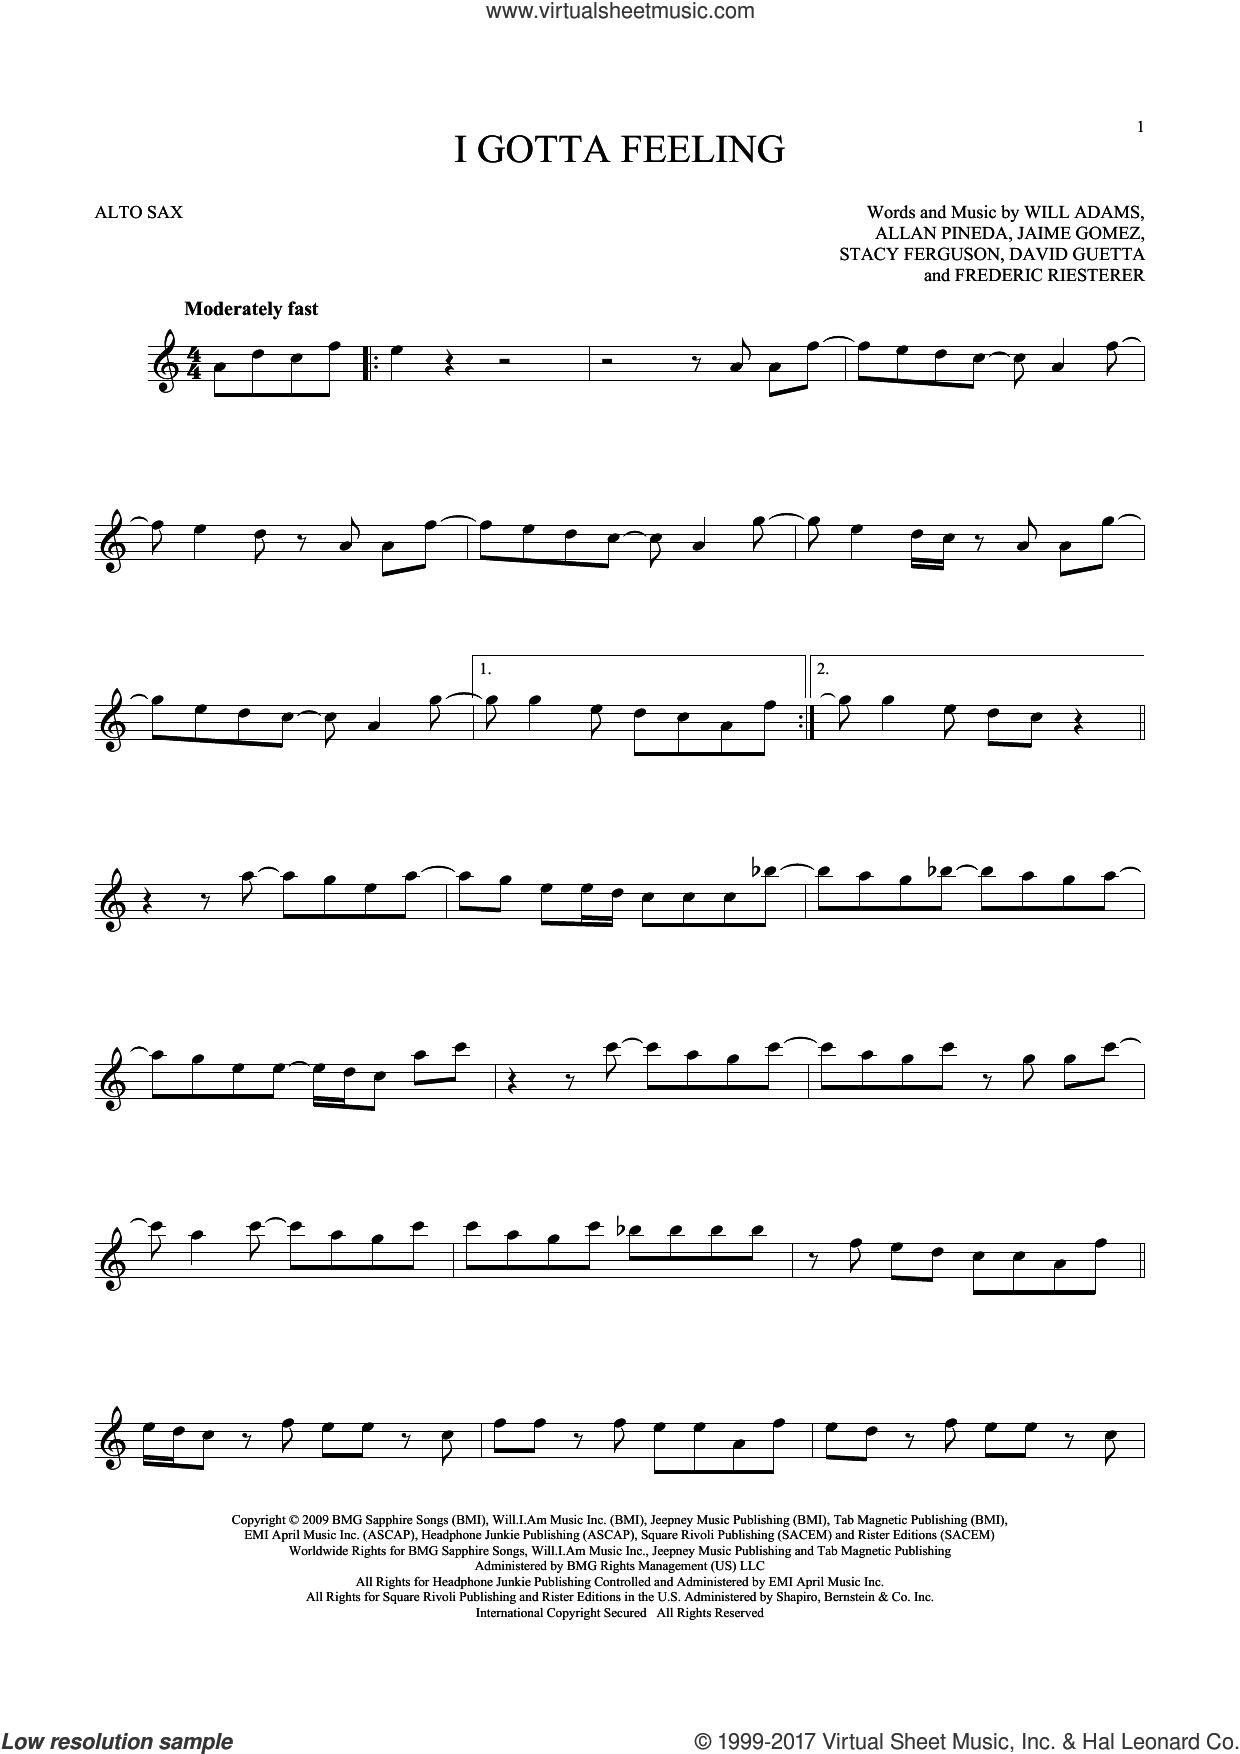 I Gotta Feeling sheet music for alto saxophone solo ( Sax) by Will Adams, Black Eyed Peas, David Guetta and Stacy Ferguson. Score Image Preview.